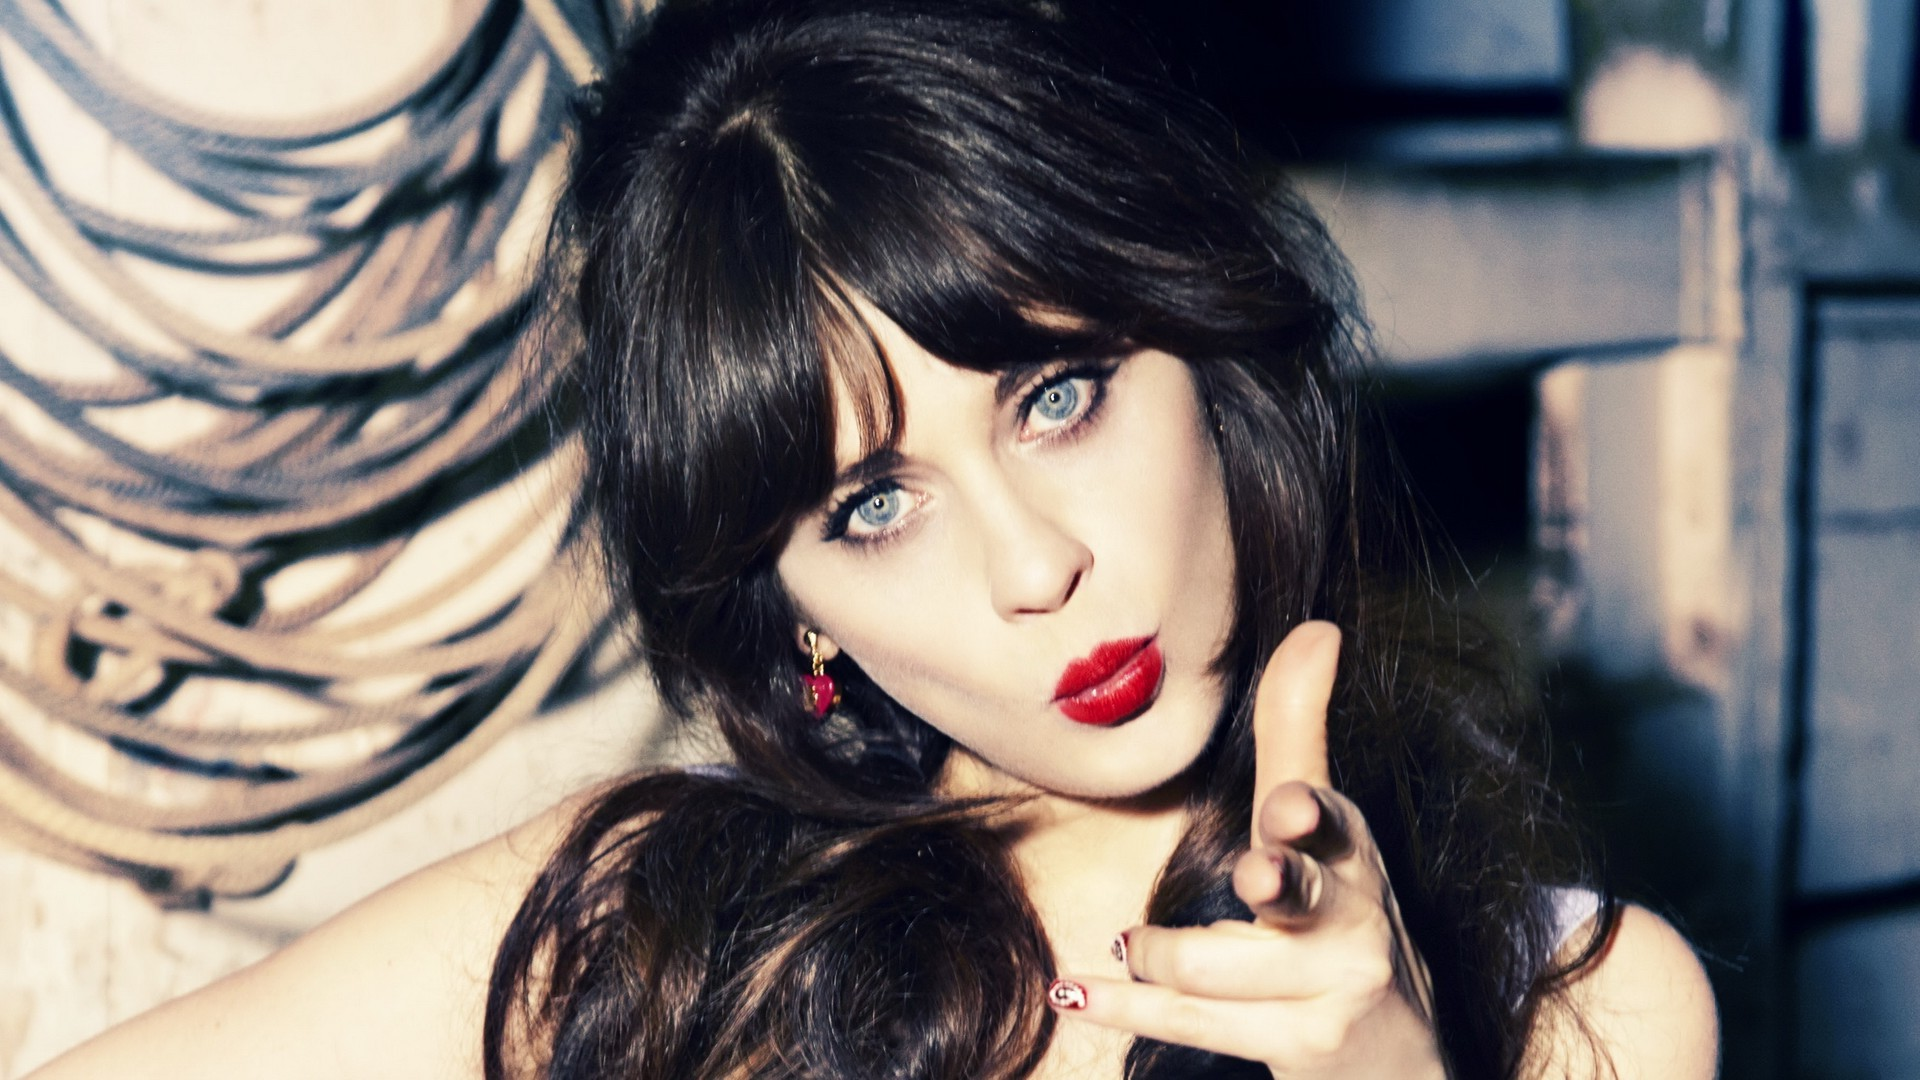 zooey deschanel википедия